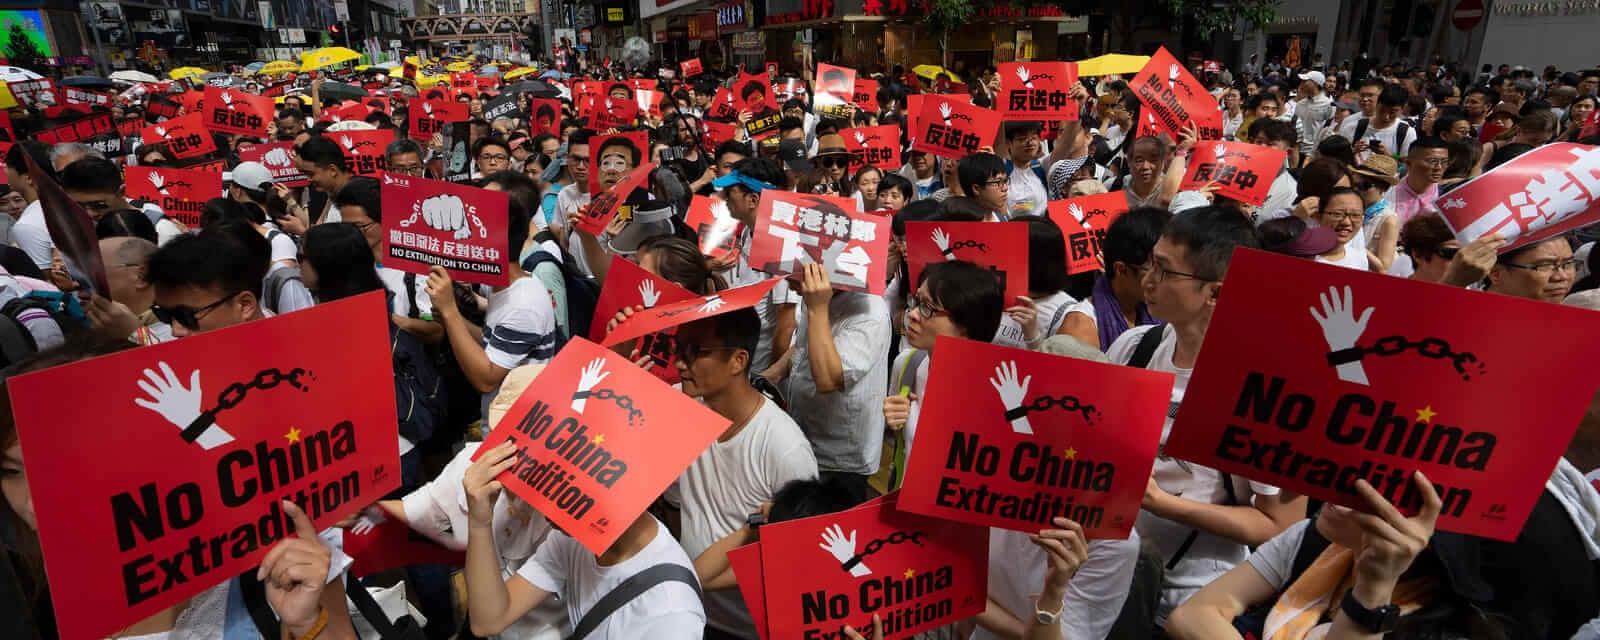 Protesters in China holding signs